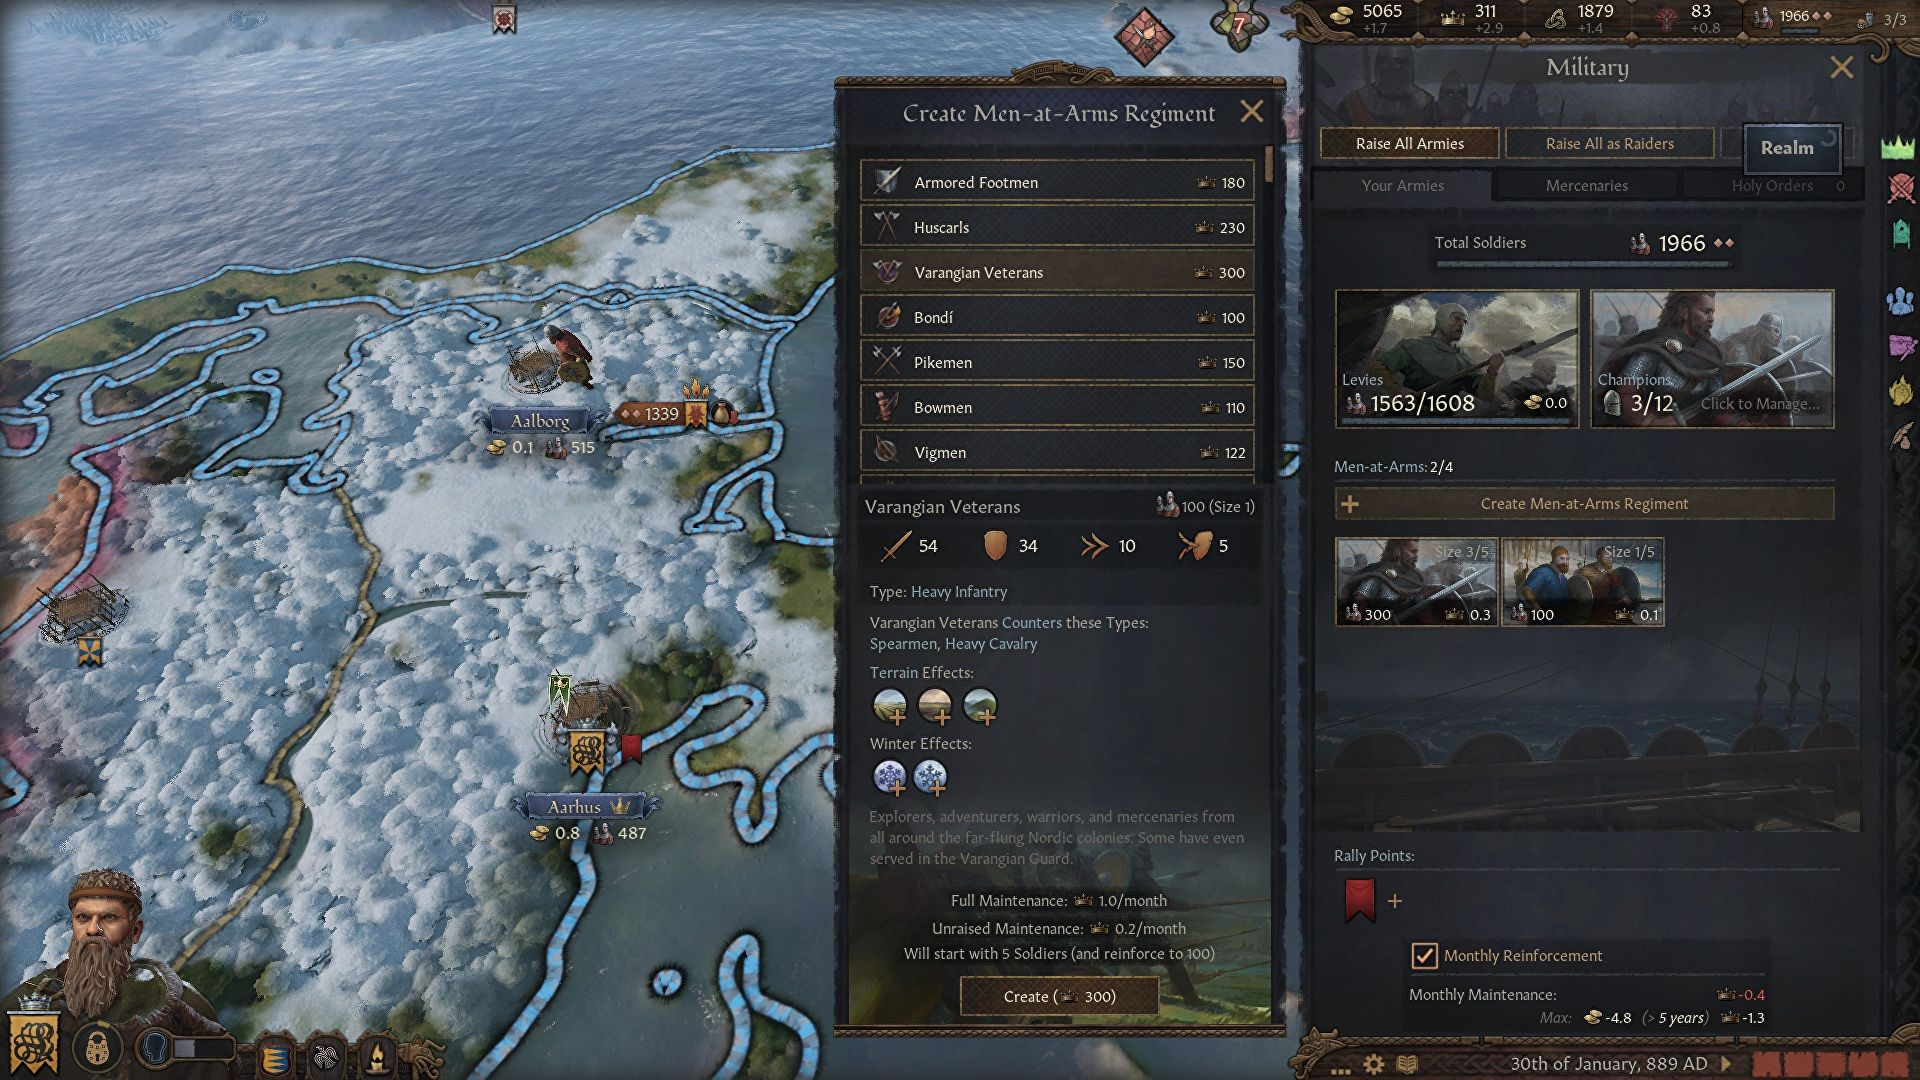 Crusader Kings 3 is getting in on that viking action